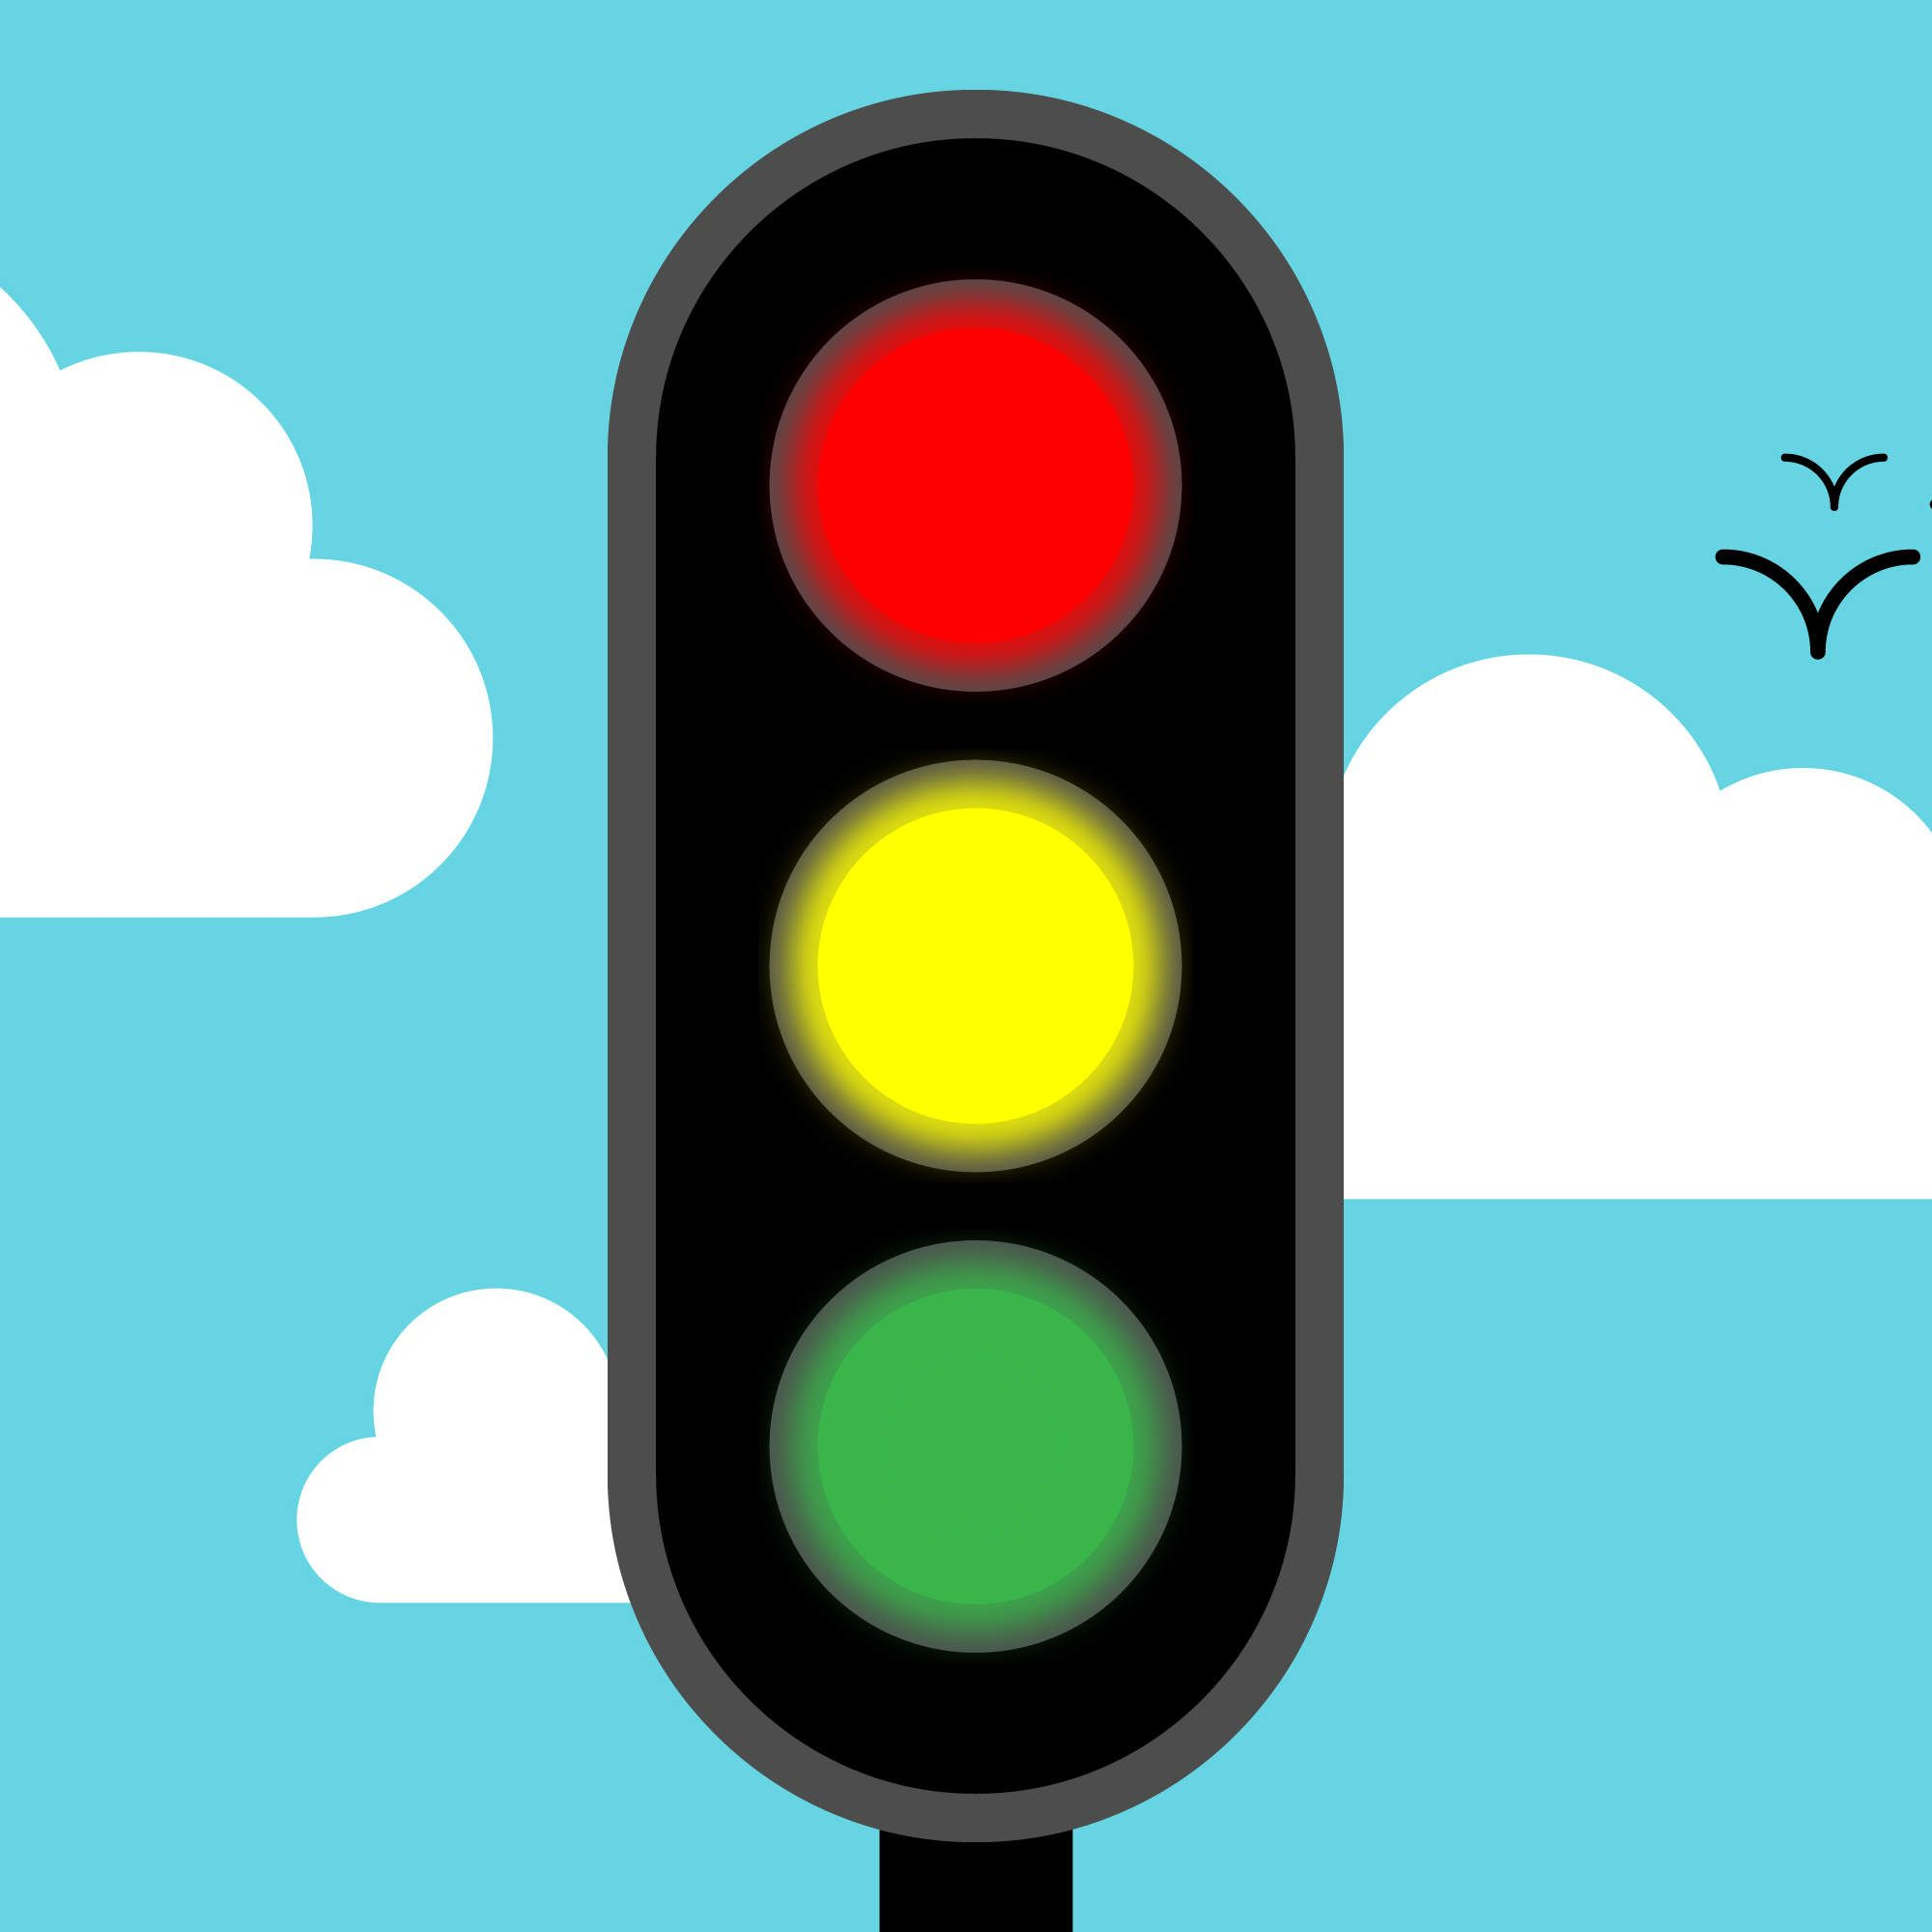 The Reason Traffic Lights Are Red, Yellow, and Green | Traffic light ...